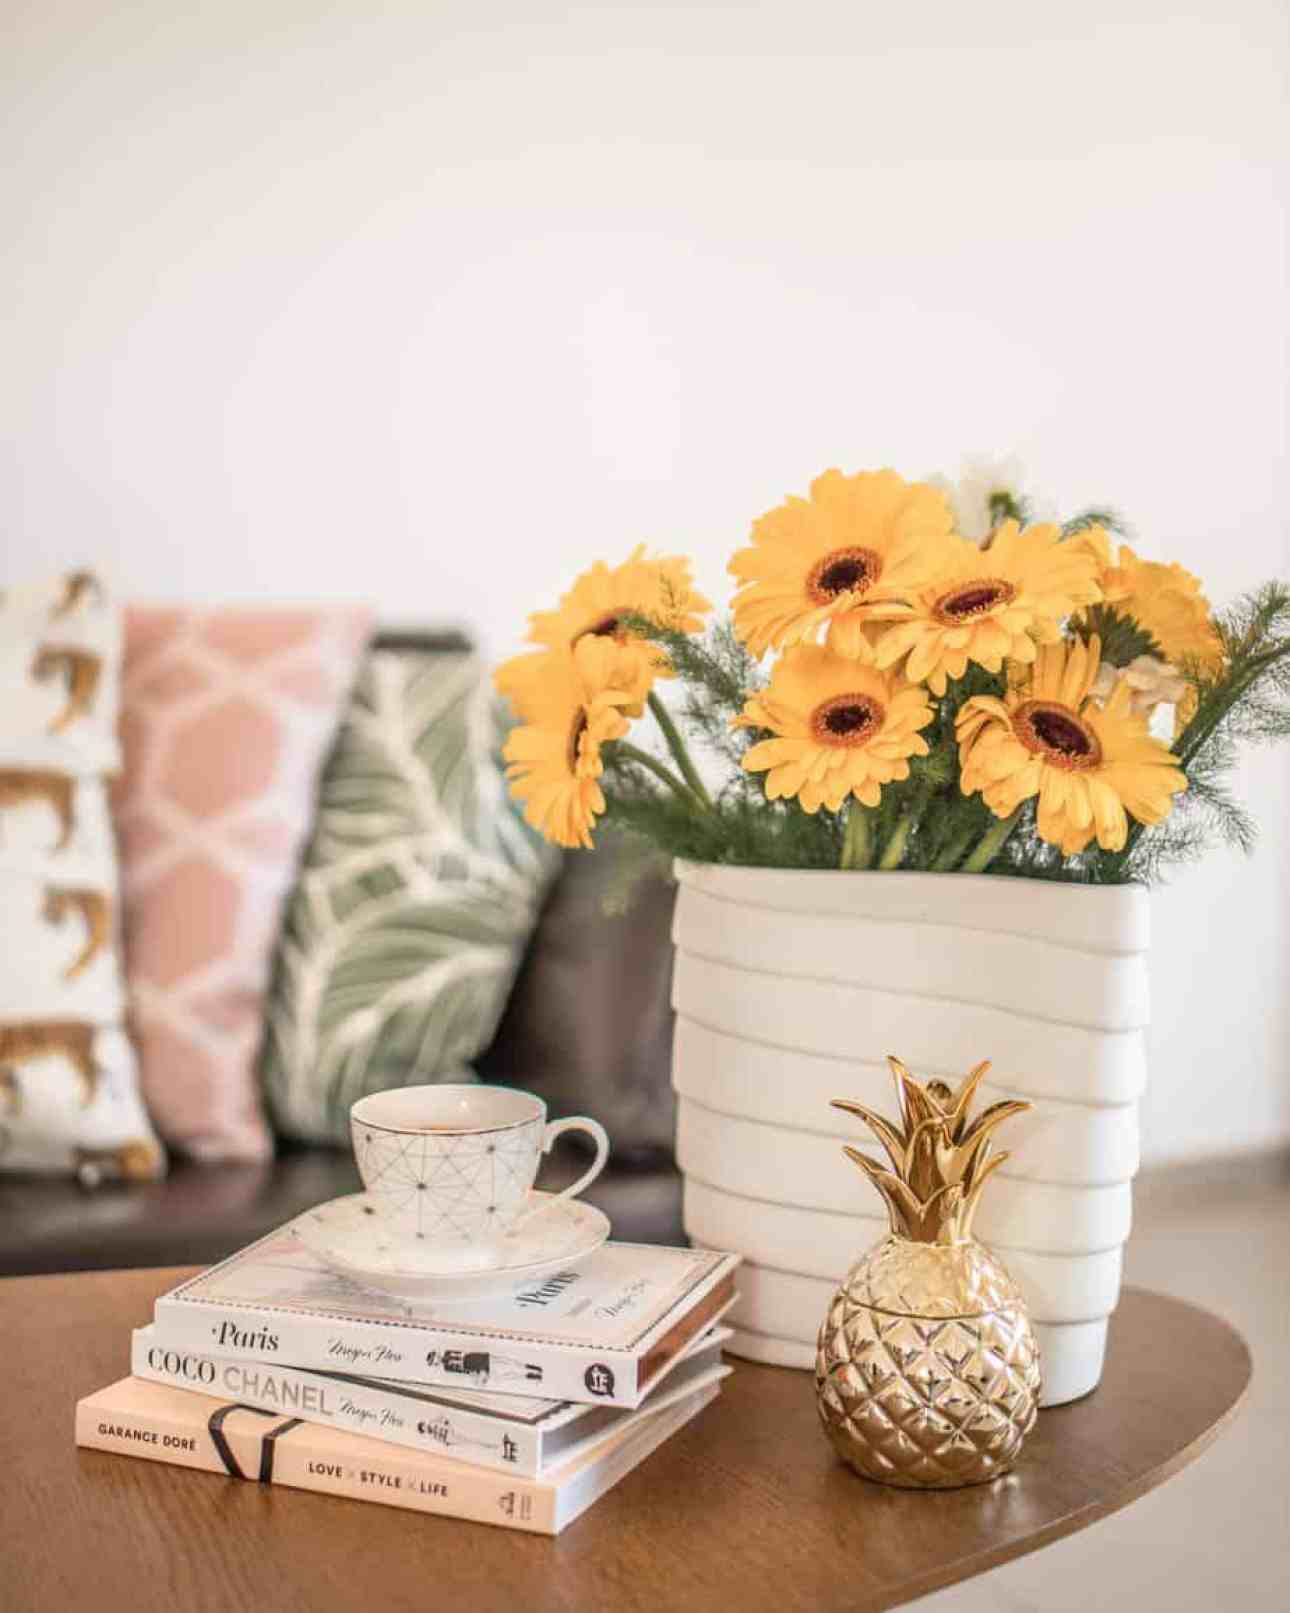 Yellow flowers in a white vase on the coffee table.